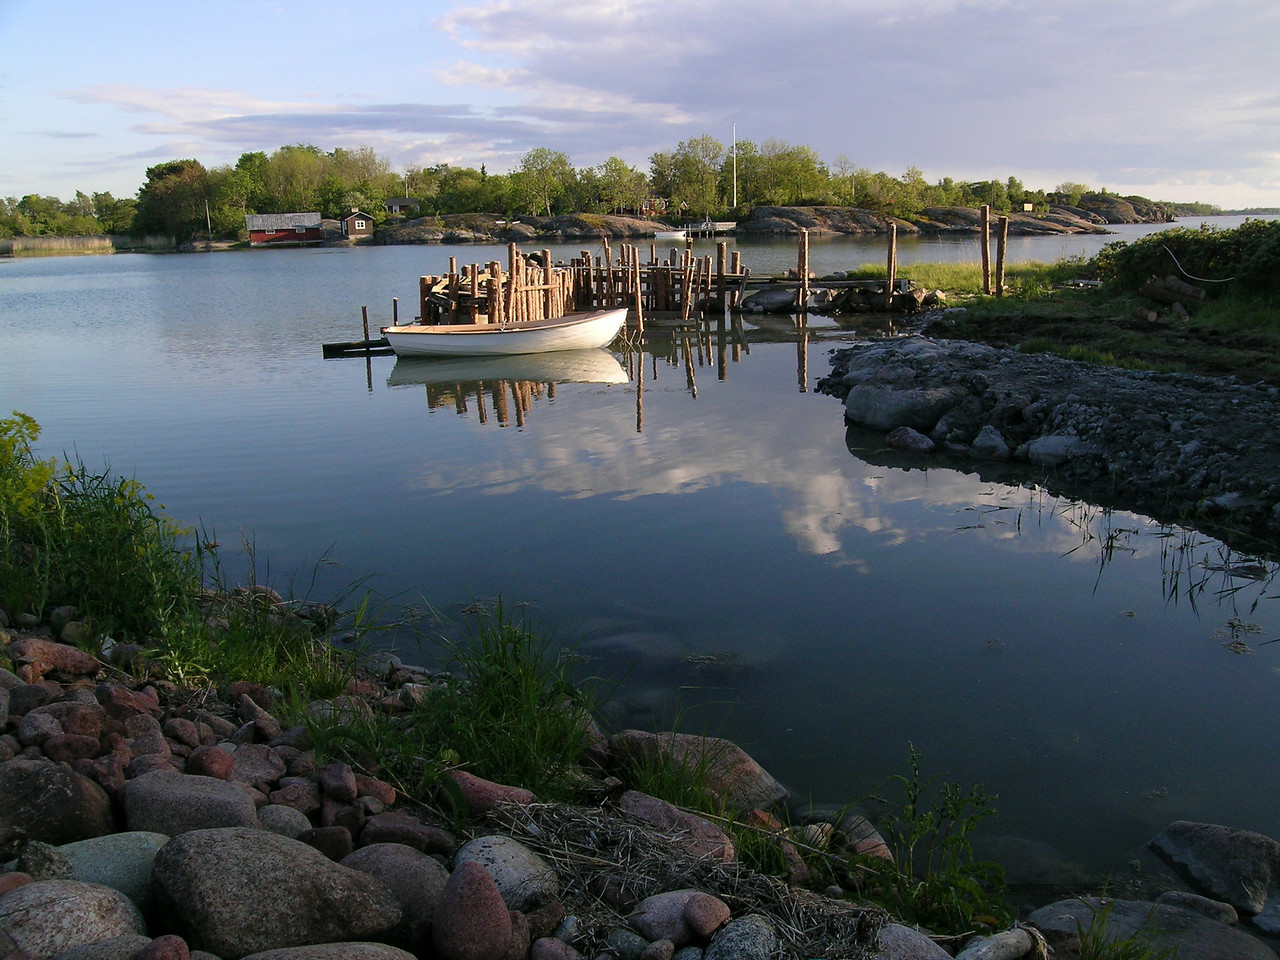 Waterfront scenery, Åland Islands, Finland.  This spot was like living in a jigsaw puzzle picture.